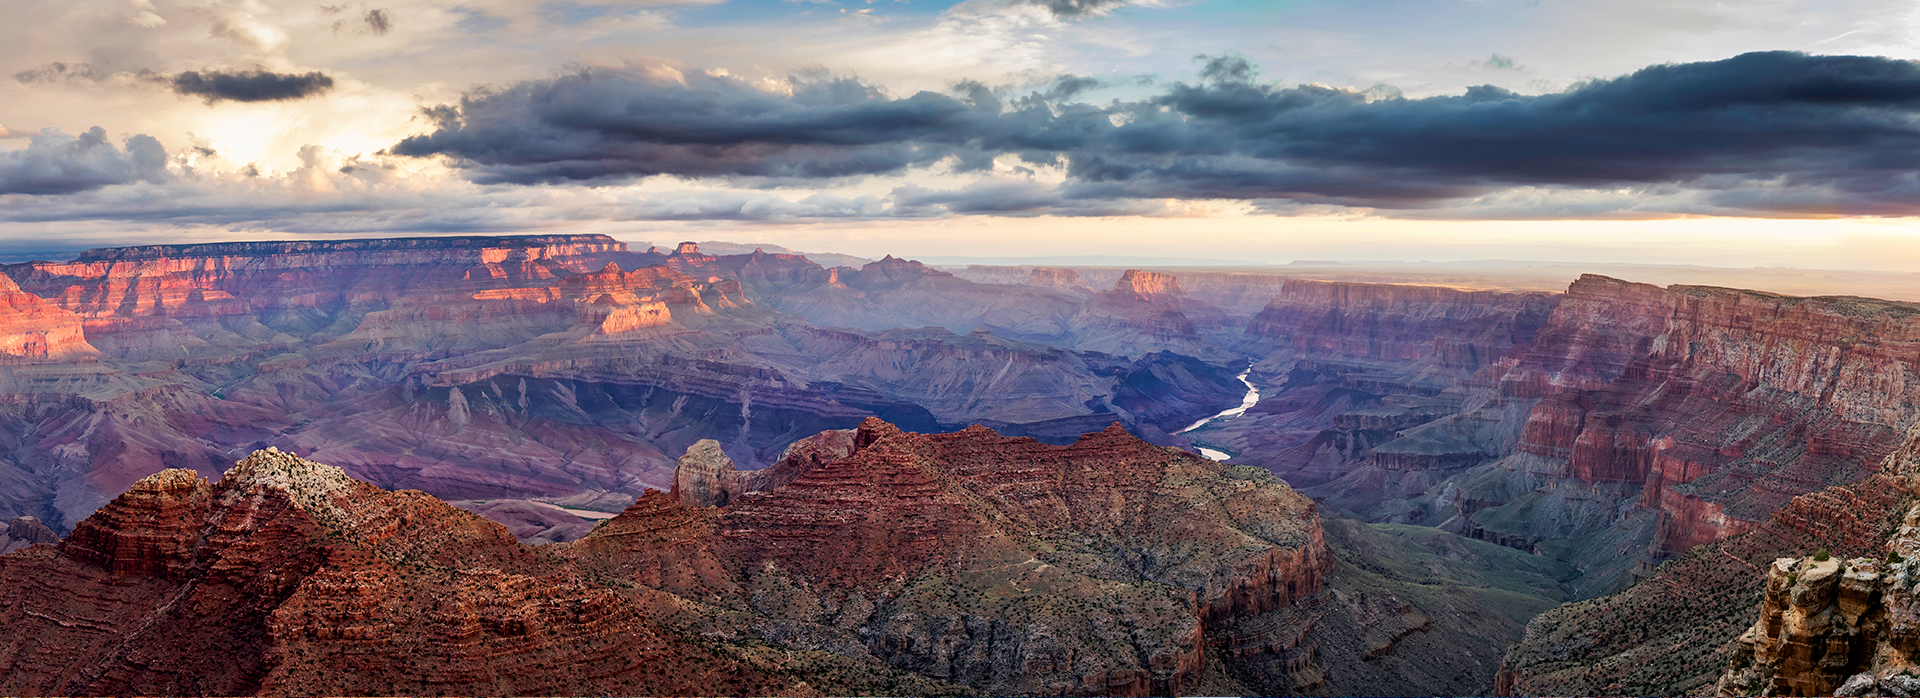 One of the world's great natural wonders, the Grand Canyon National Park, turns 100